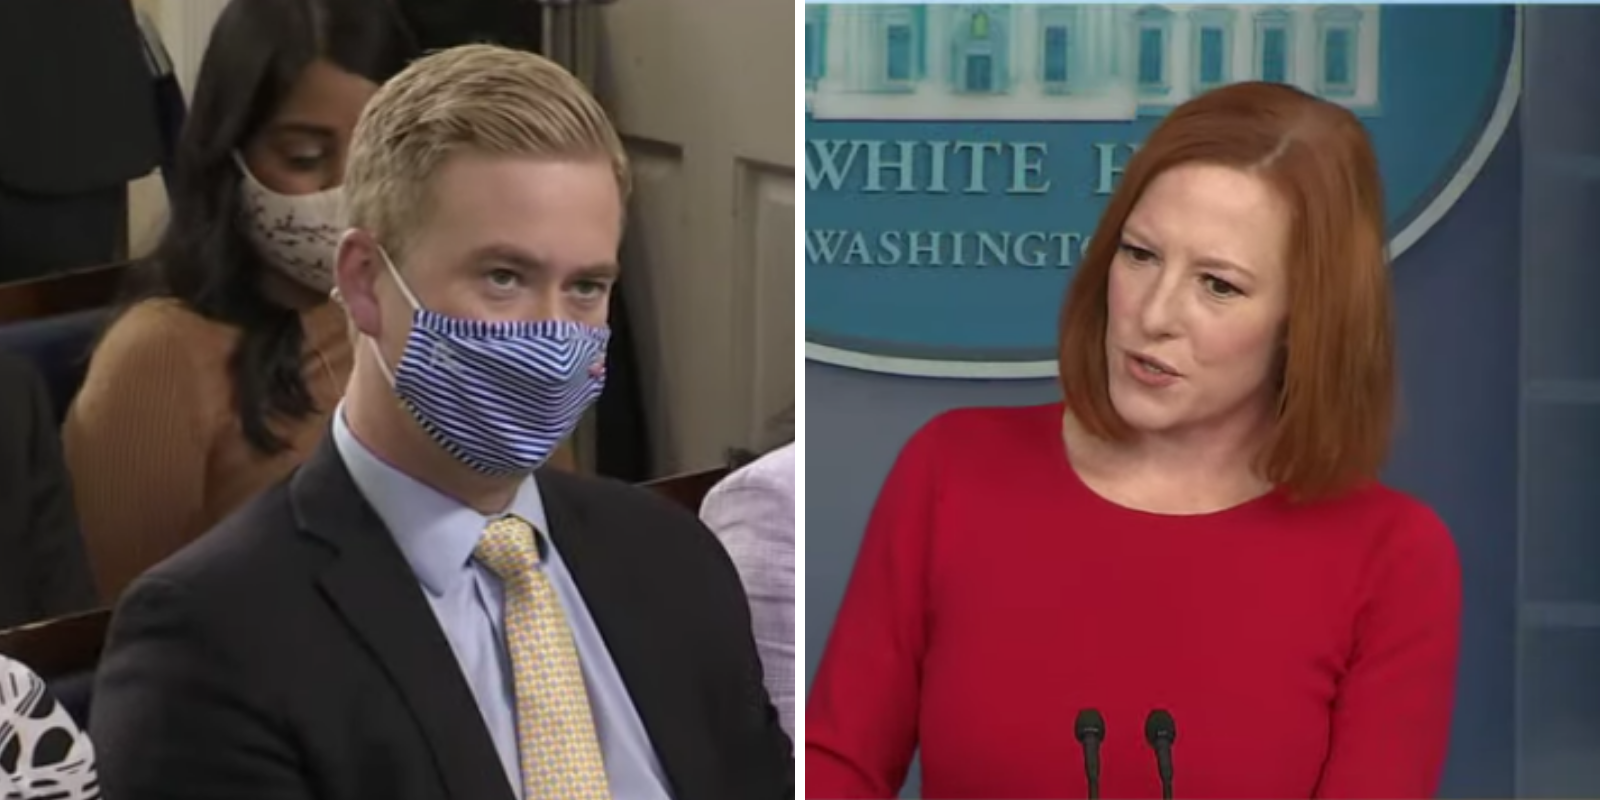 WATCH: Psaki justifies vaccine mandates, stating COVID was the leading cause of death among cops last year, Libby Emmons, on October 19, 2021 at 6:35 pm The Post Millennial